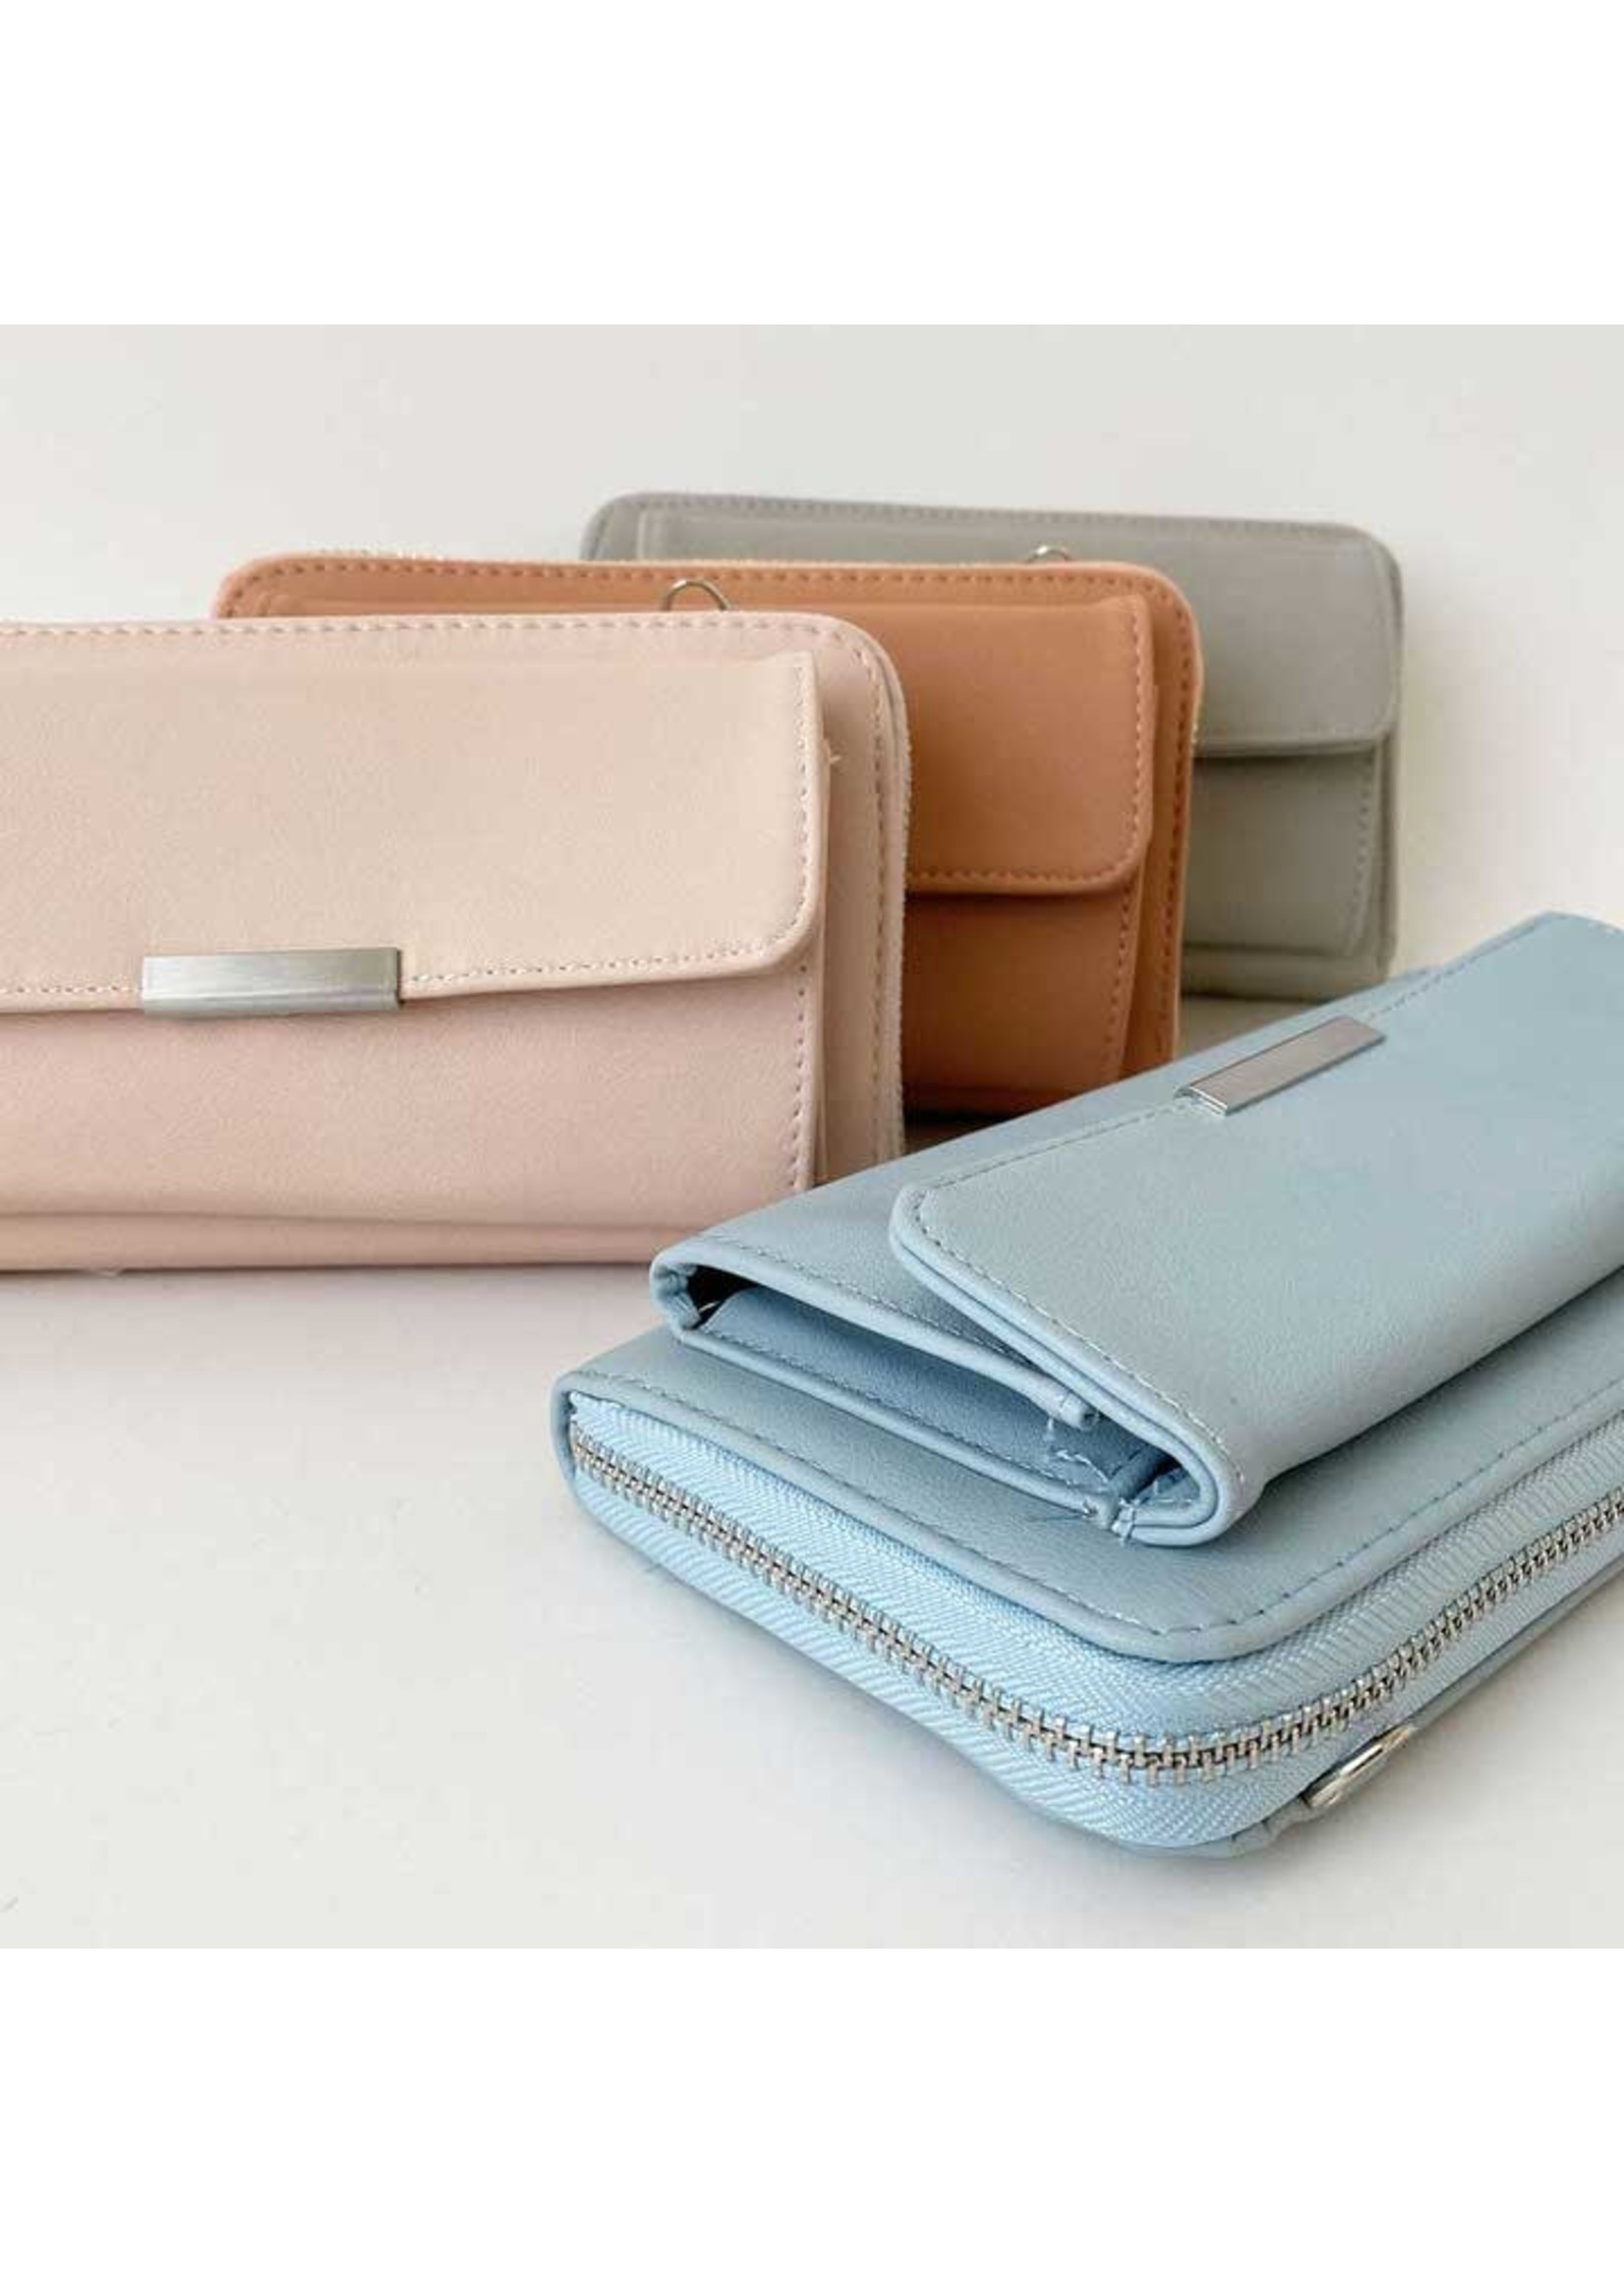 Caracol Clutch 2 in 1 Wallet/Purse